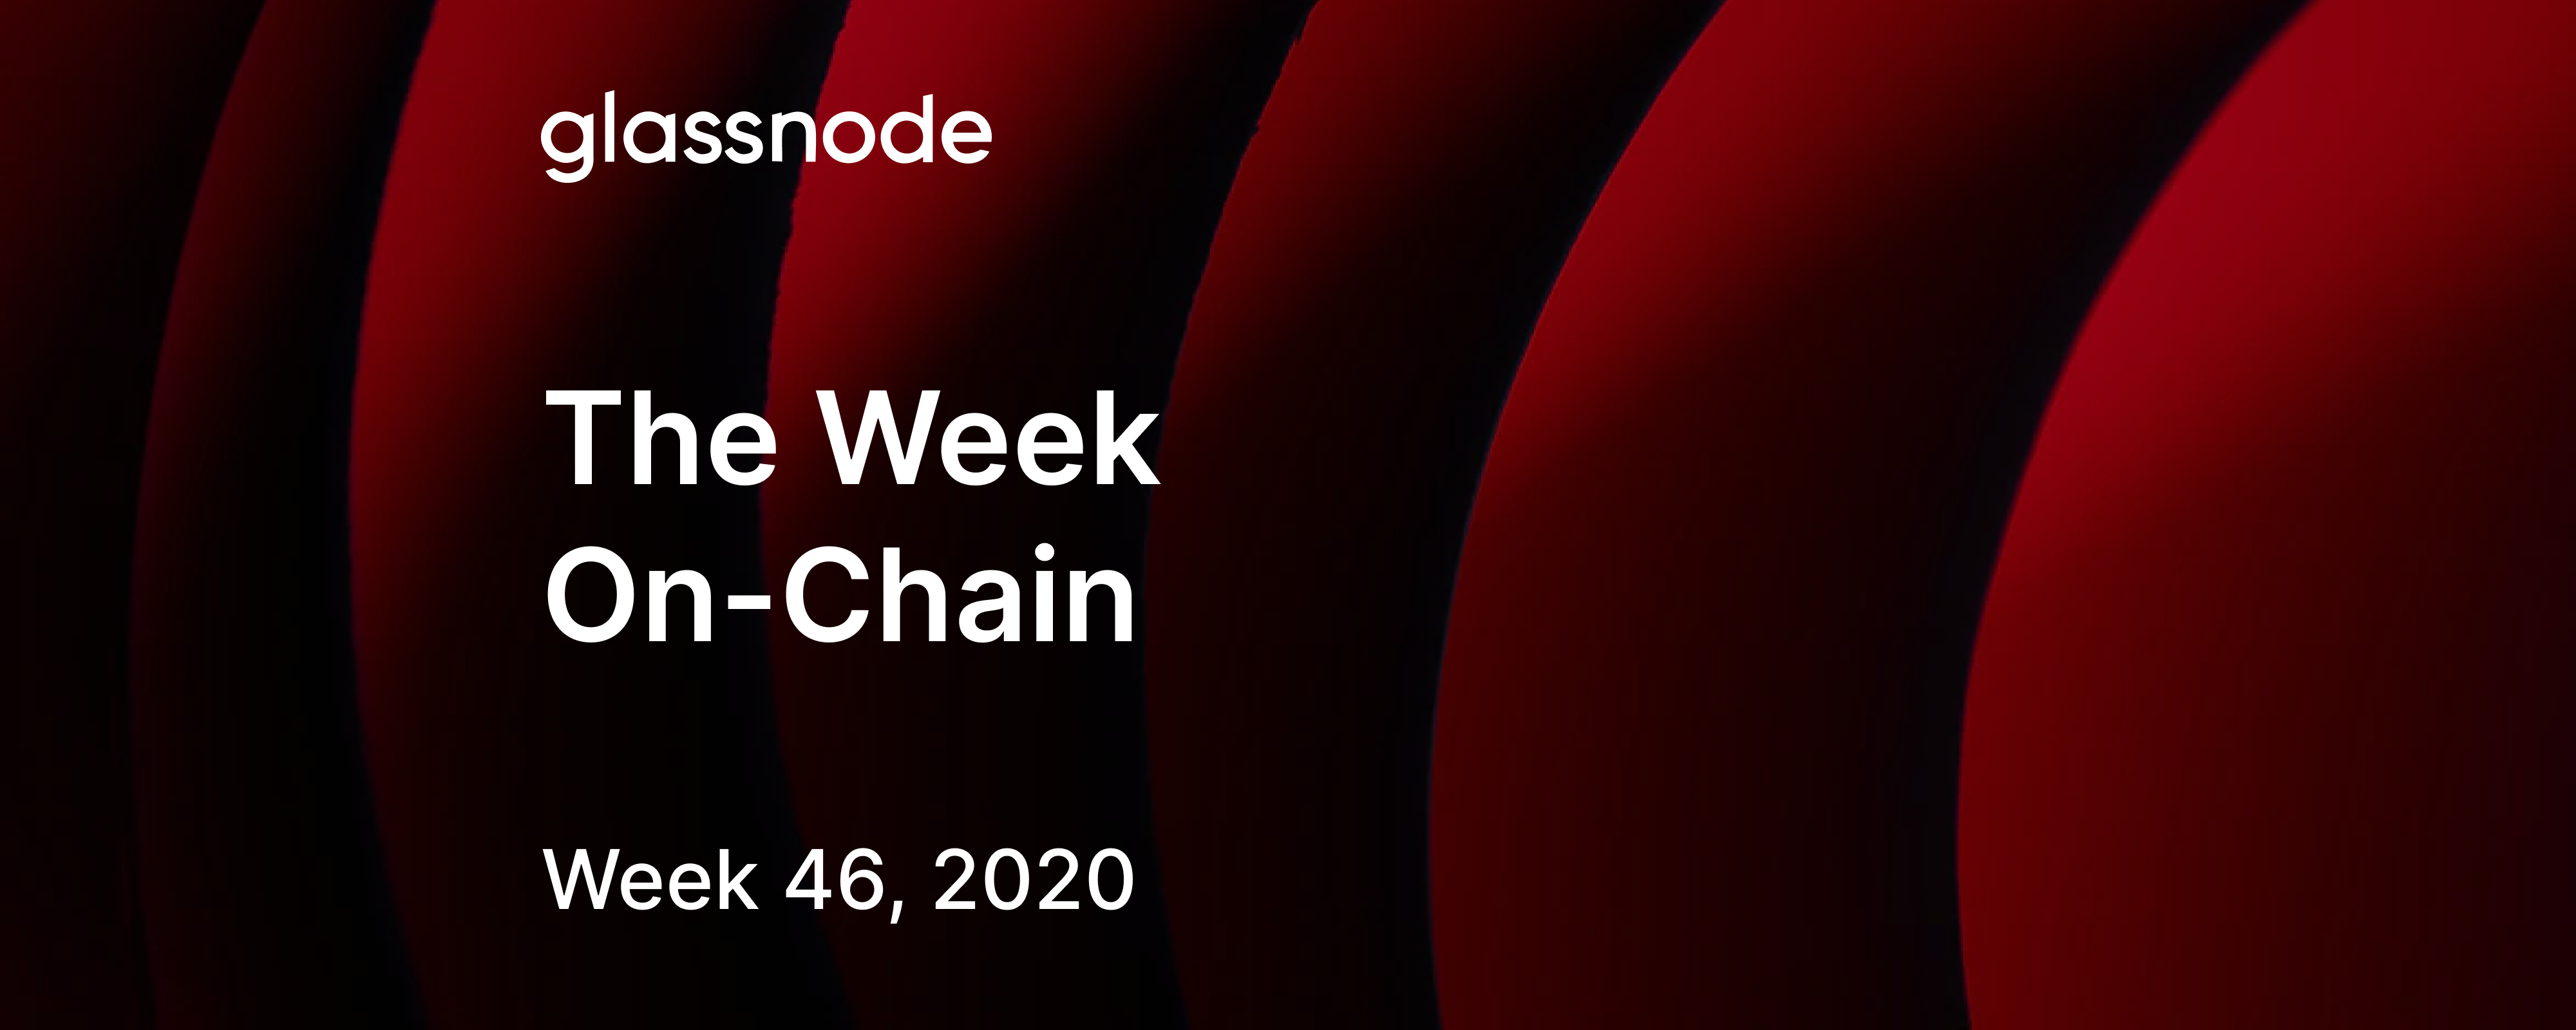 The Week On-Chain (Week 46, 2020)